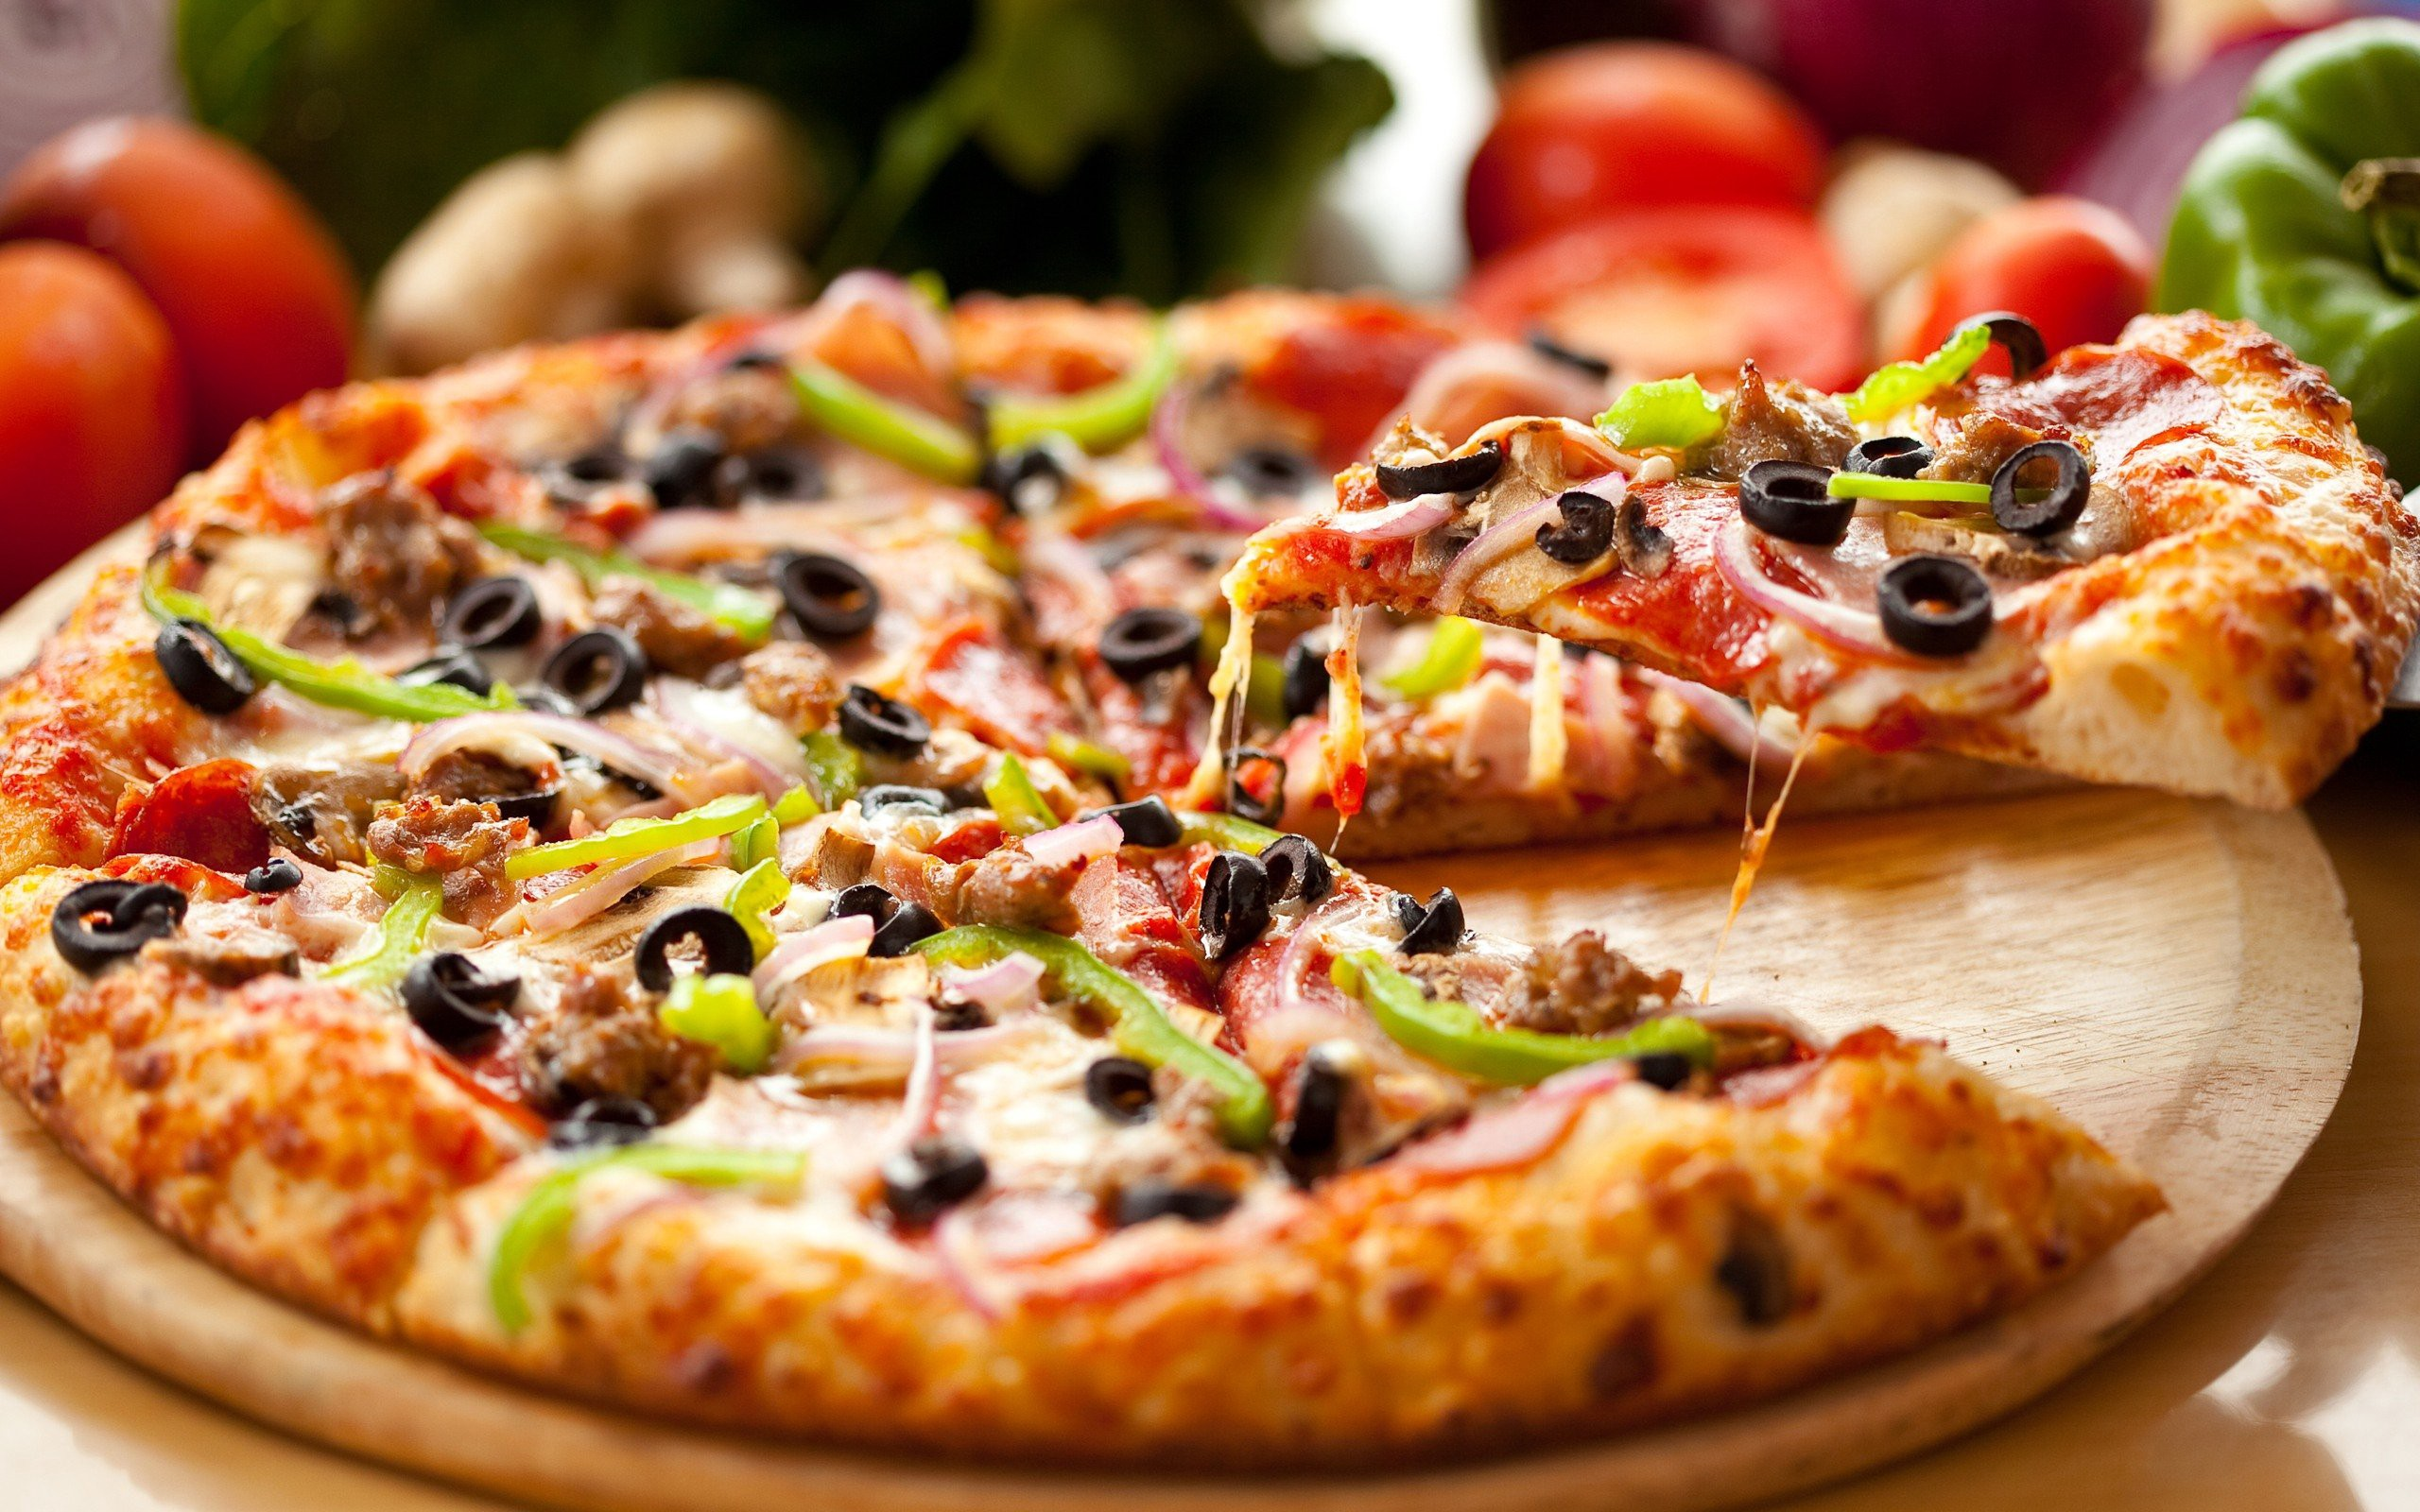 My Favorite Food Pizza I Am Very Fooi Love To Eat